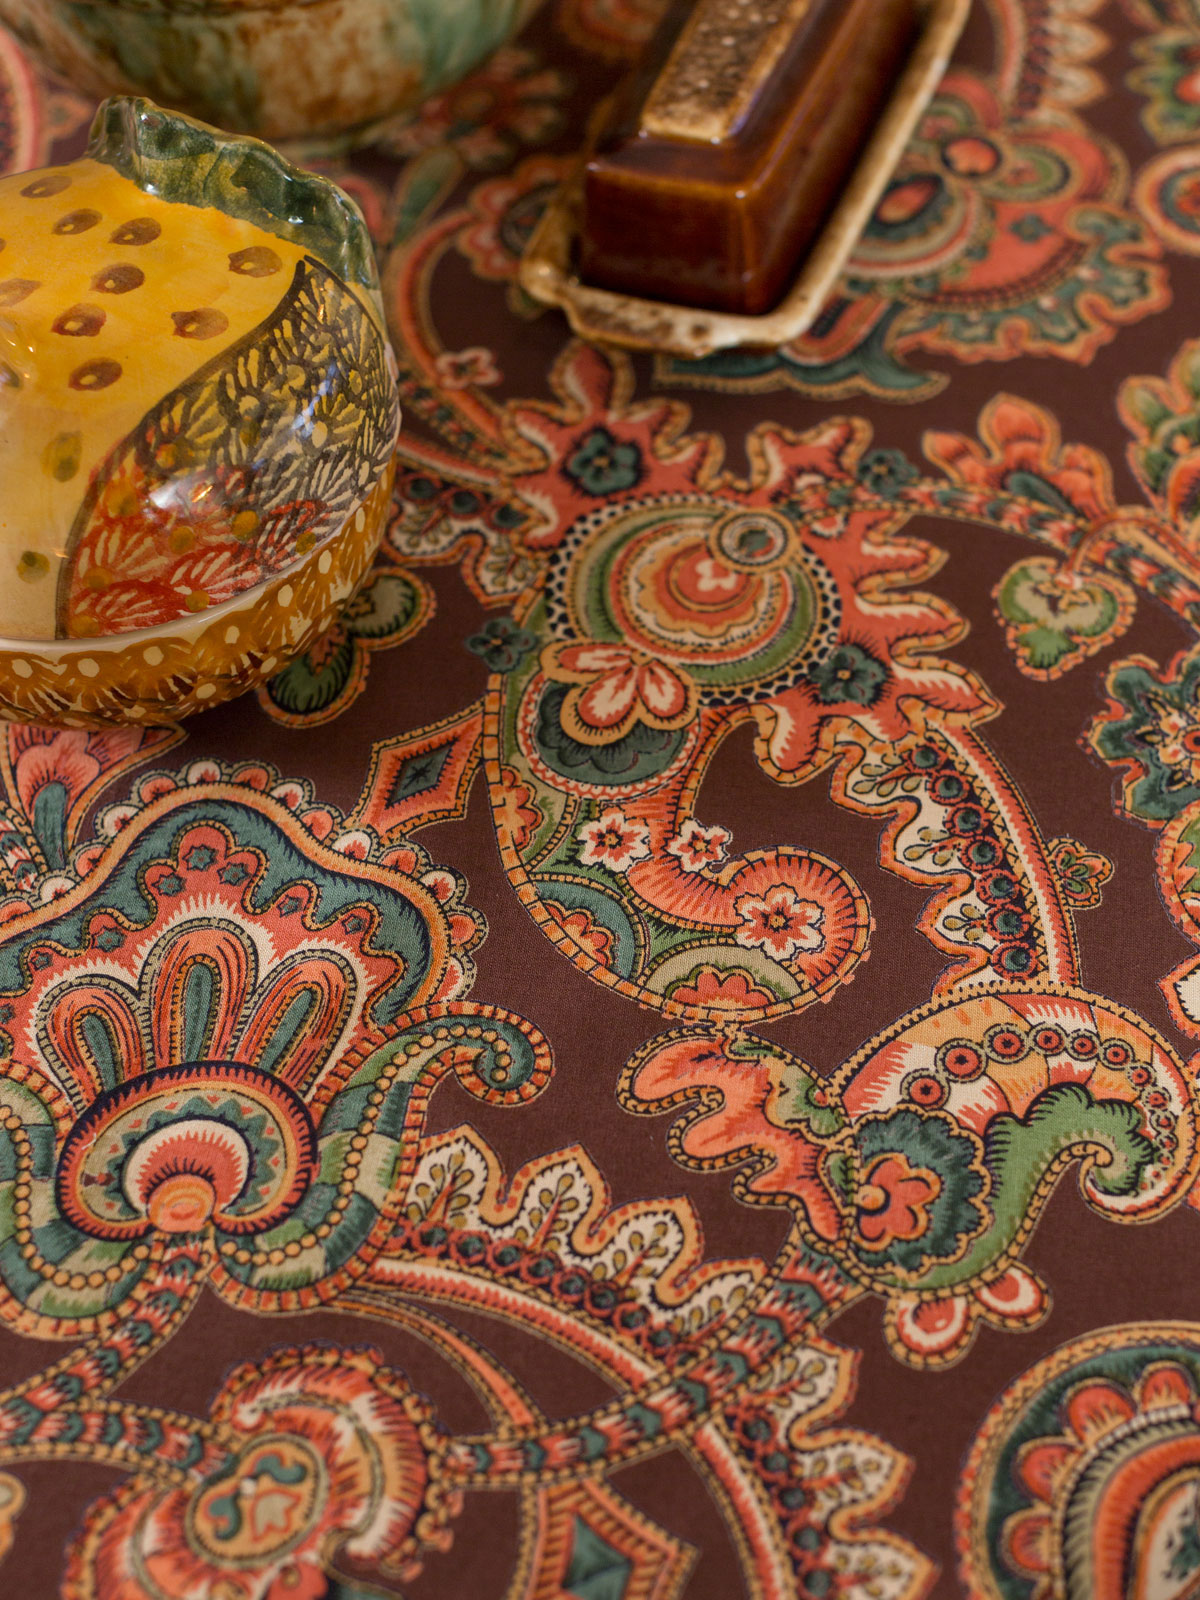 Queen's Court Tablecloth - Chocolate